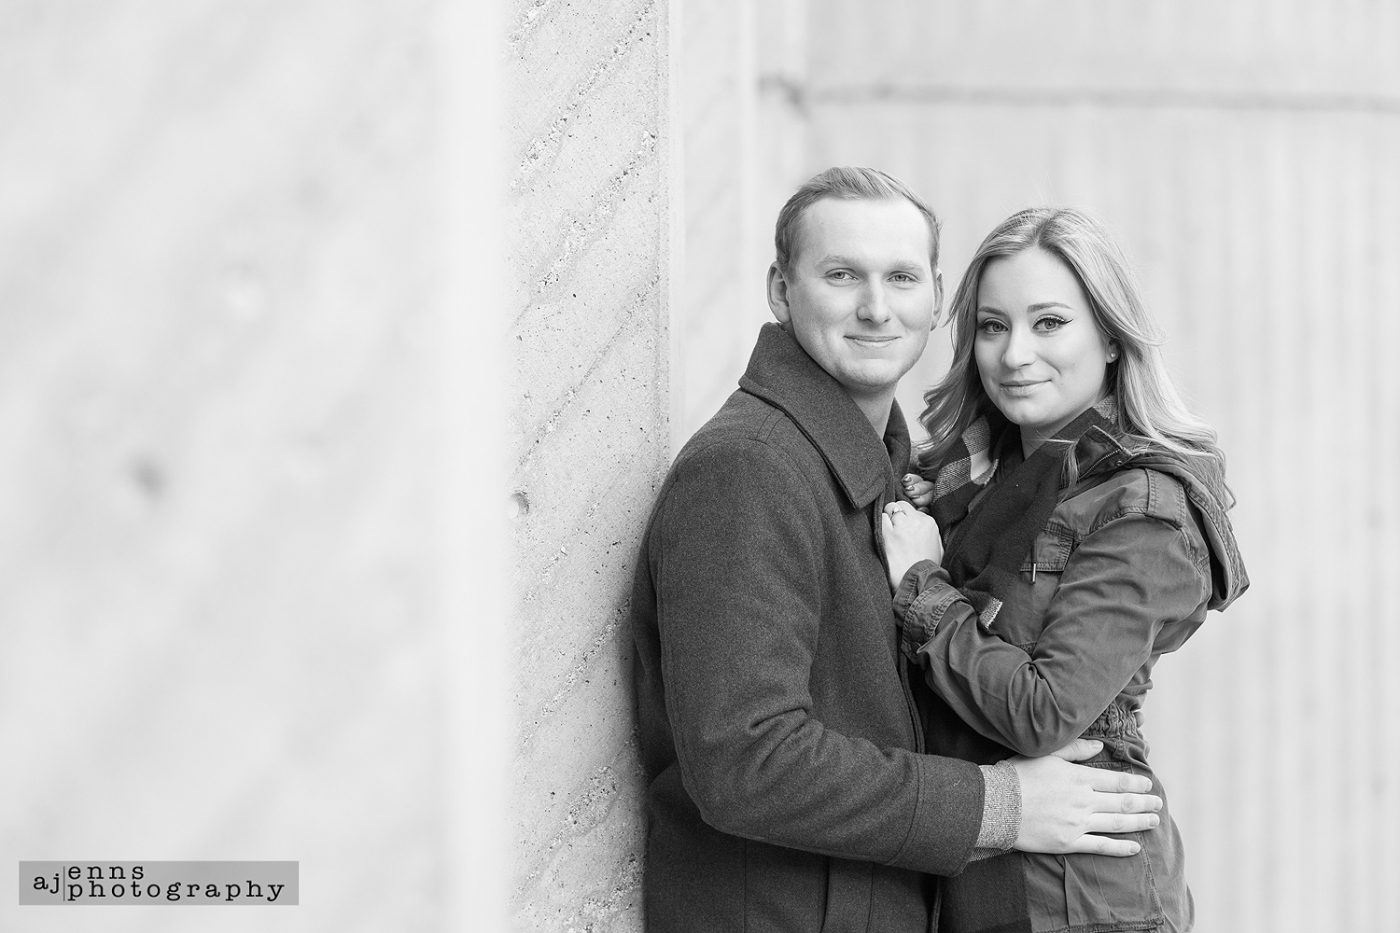 The engaged couple leaning against a brick wall in the Exchange District